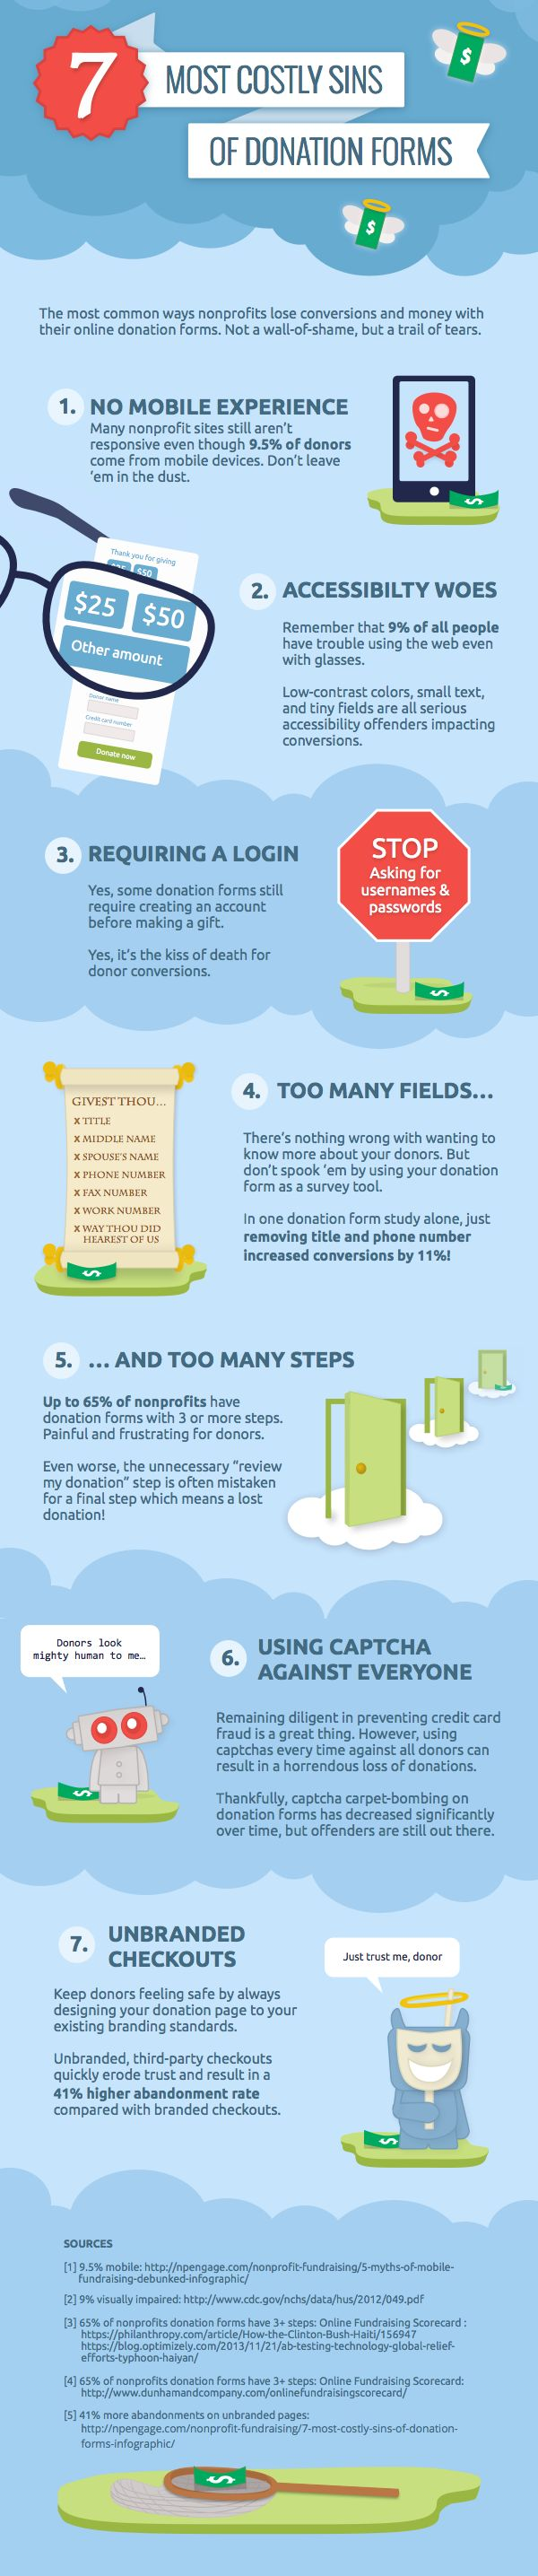 Infographic: Seven Most Costly Sins Of Donation Forms